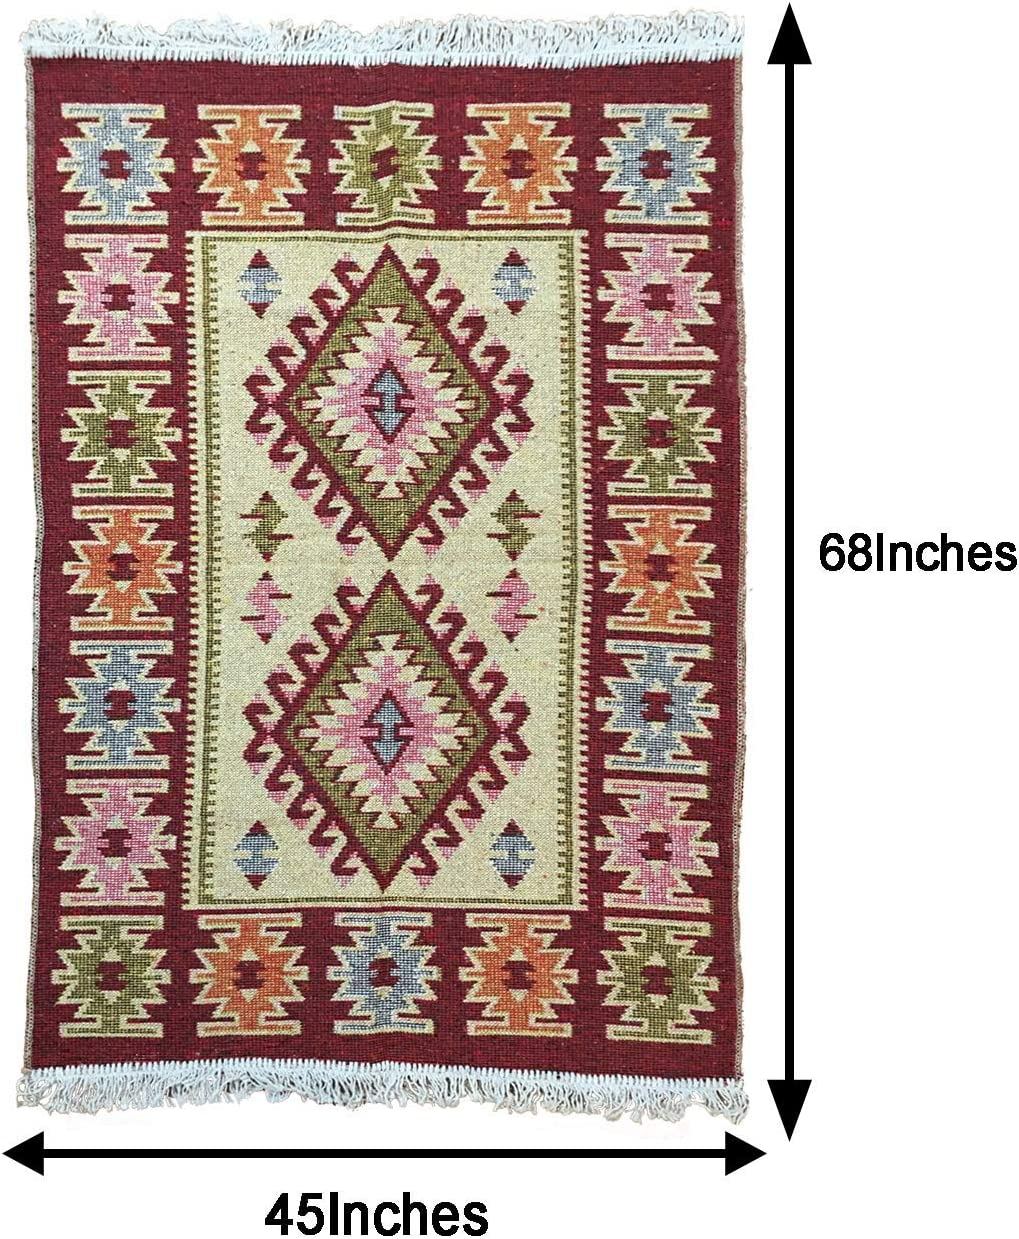 Turkish Modern Bohemian Multicolored Distressed Area Kilim Rug – Use for Both Outdoor and Indoor 45 X 68